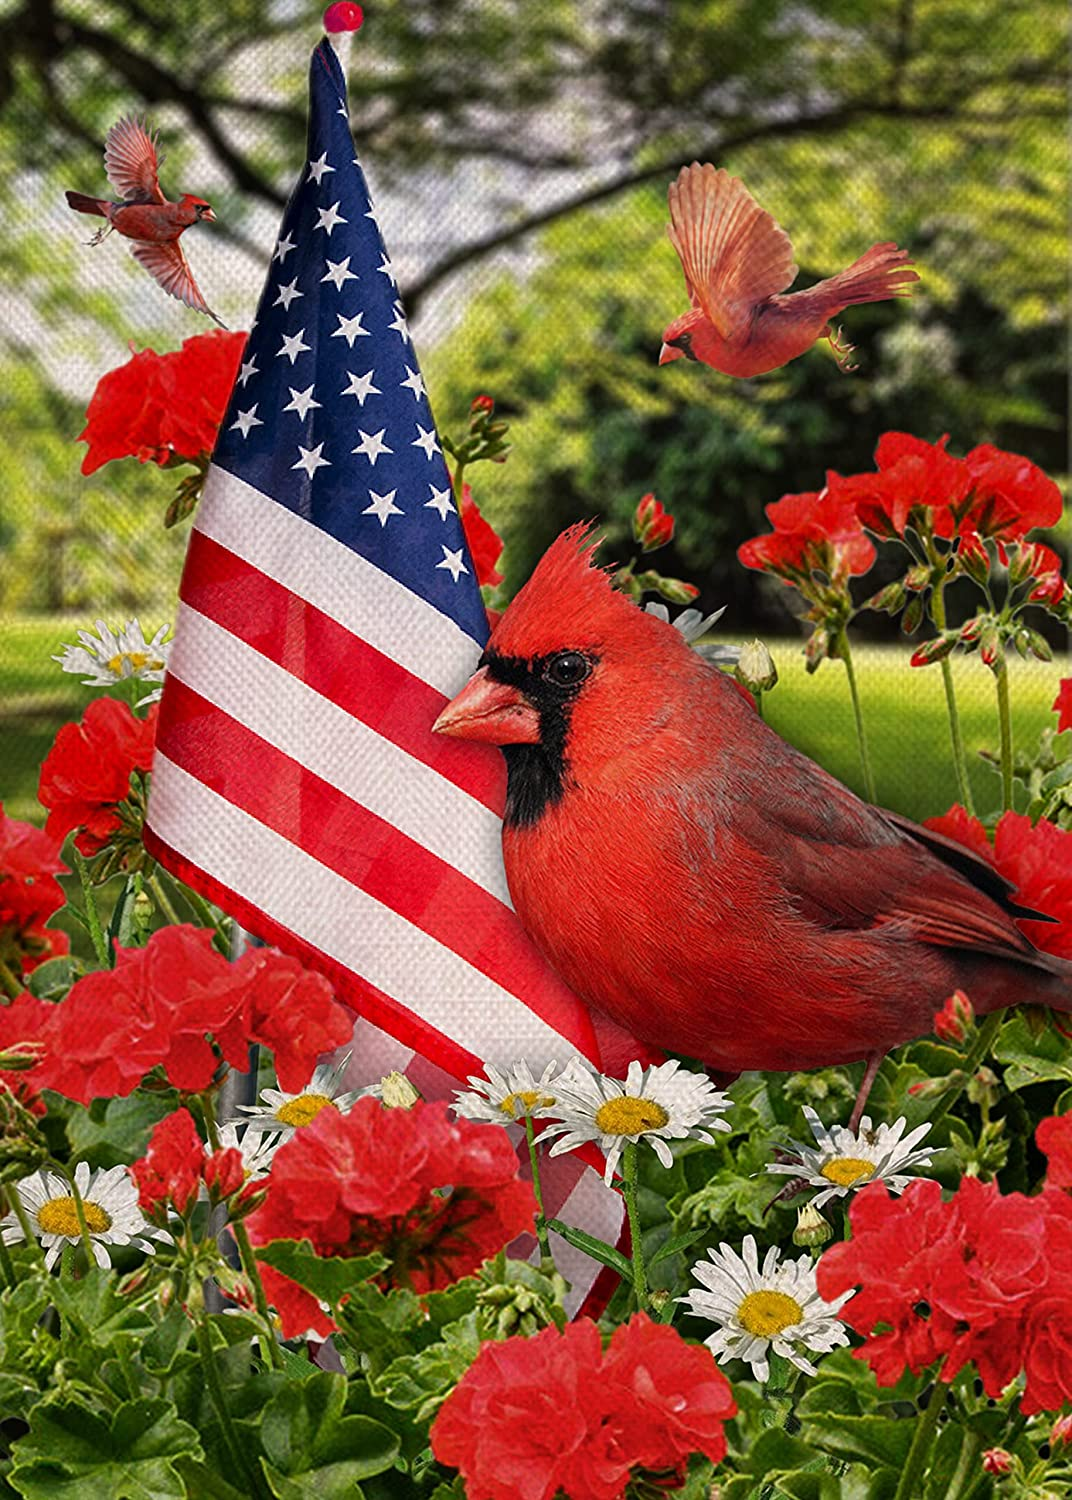 Covido Home Decorative American Cardinal Garden Flag, Summer Geranium Daisy House Yard Flower Decor Red Birds Outside Decoration, USA July 4th Patriotic Outdoor Small Burlap Flag Double Sided 12x18